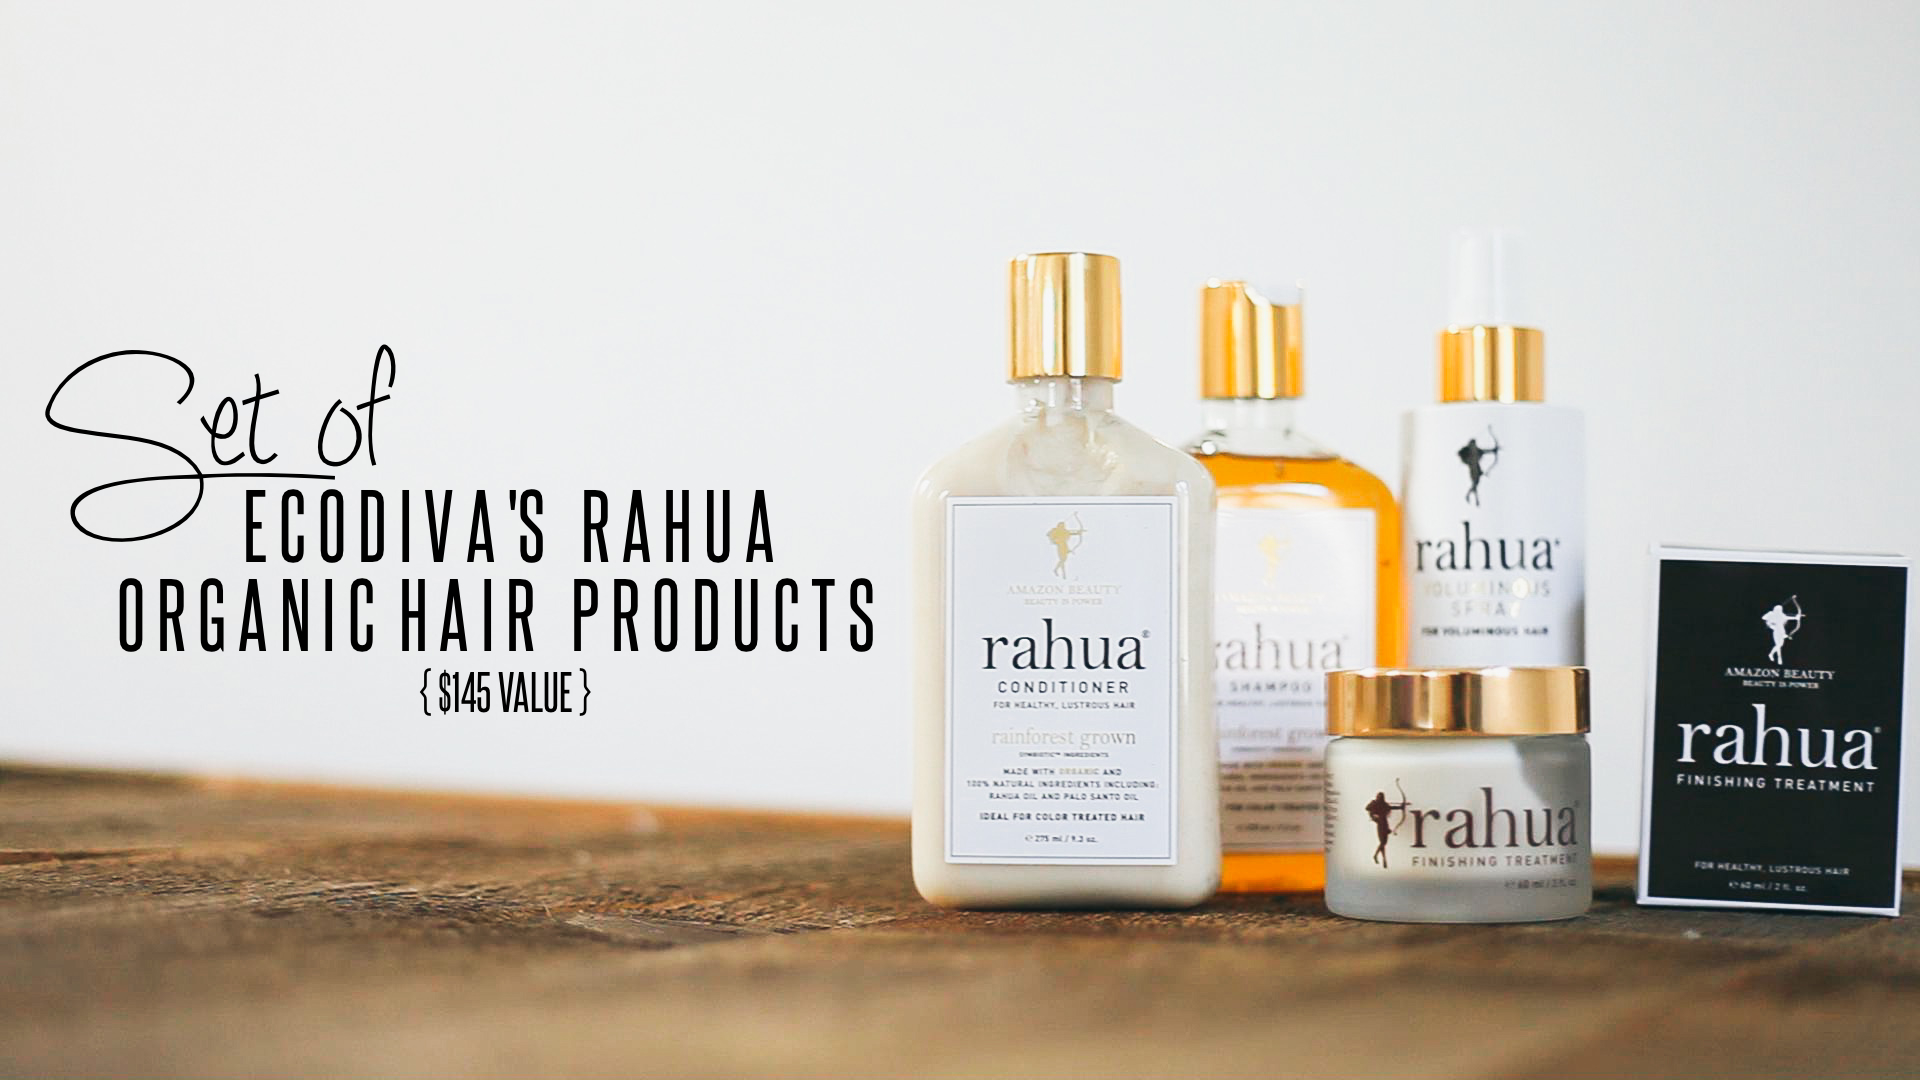 rahua_ecodiva_products.jpg